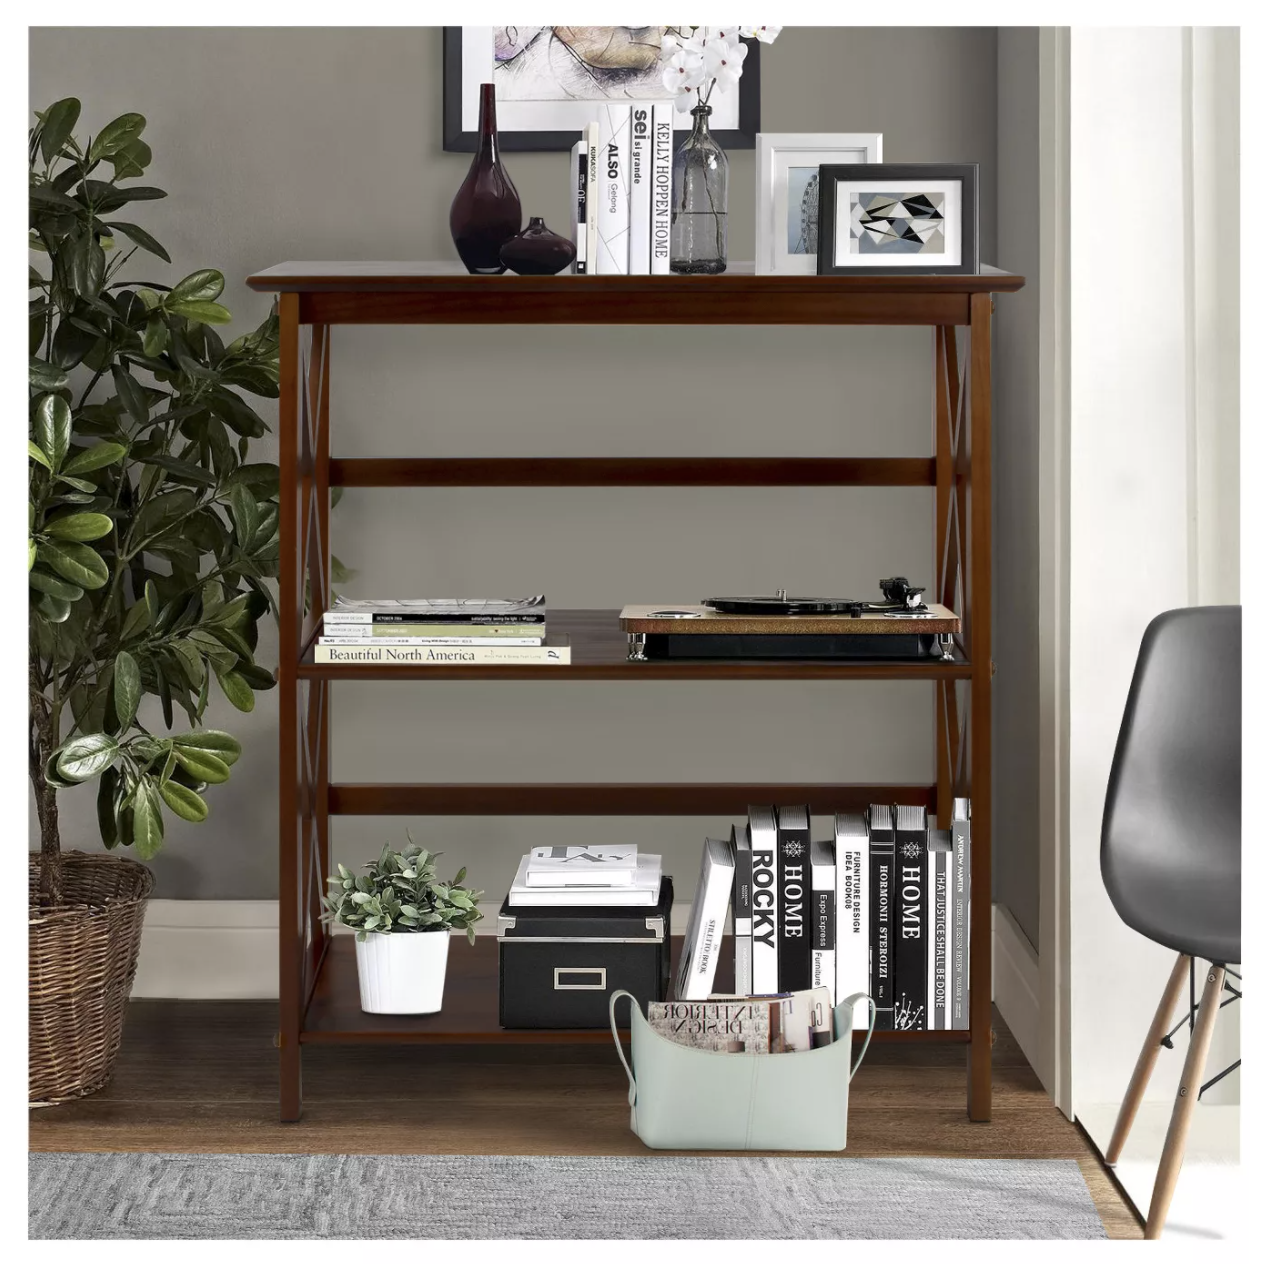 A basic book shelf with three tiers